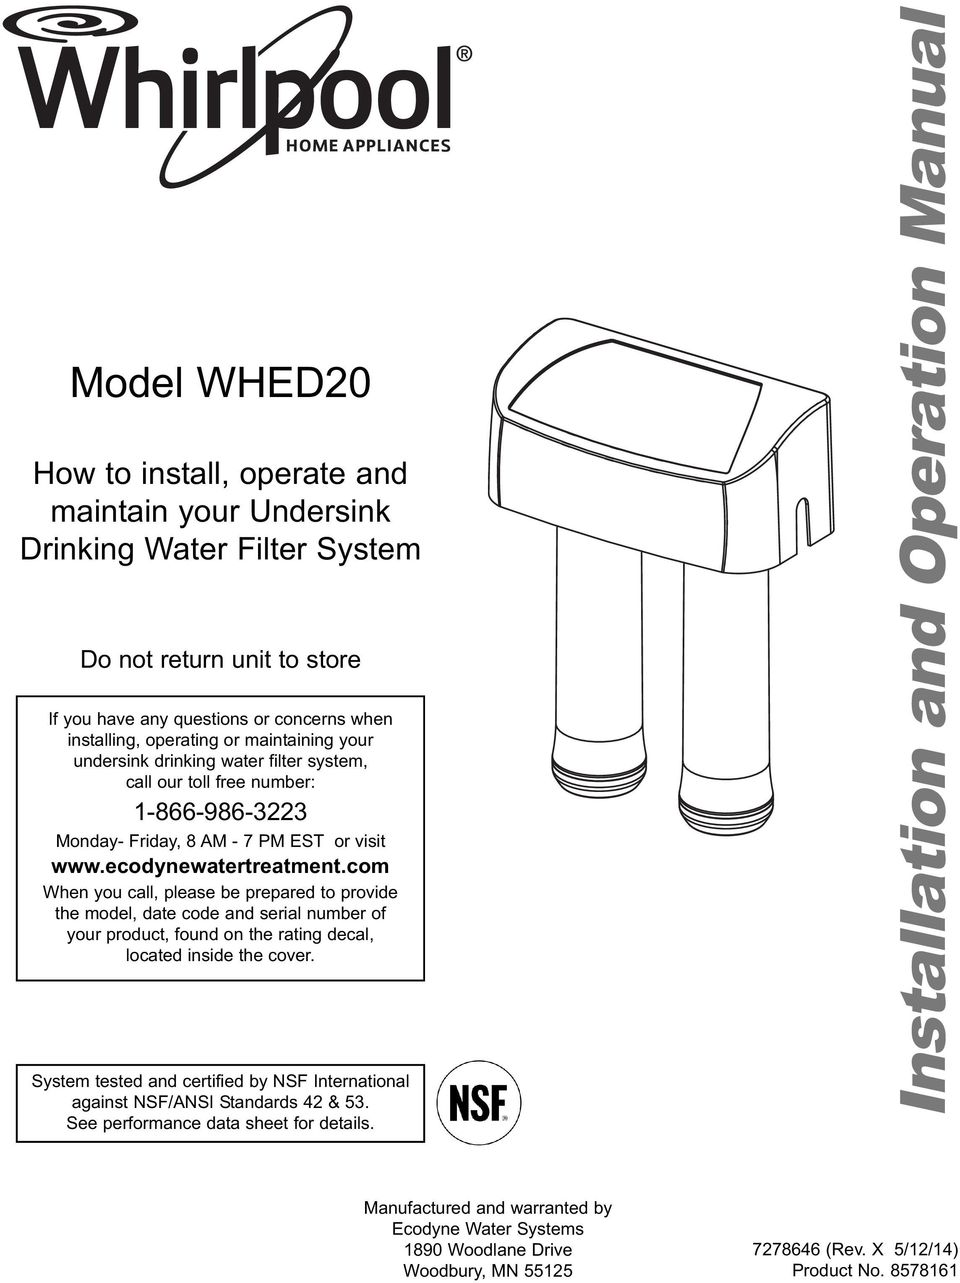 com When you call, please be prepared to provide the model, date code and serial number of your product, found on the rating decal, located inside the cover.